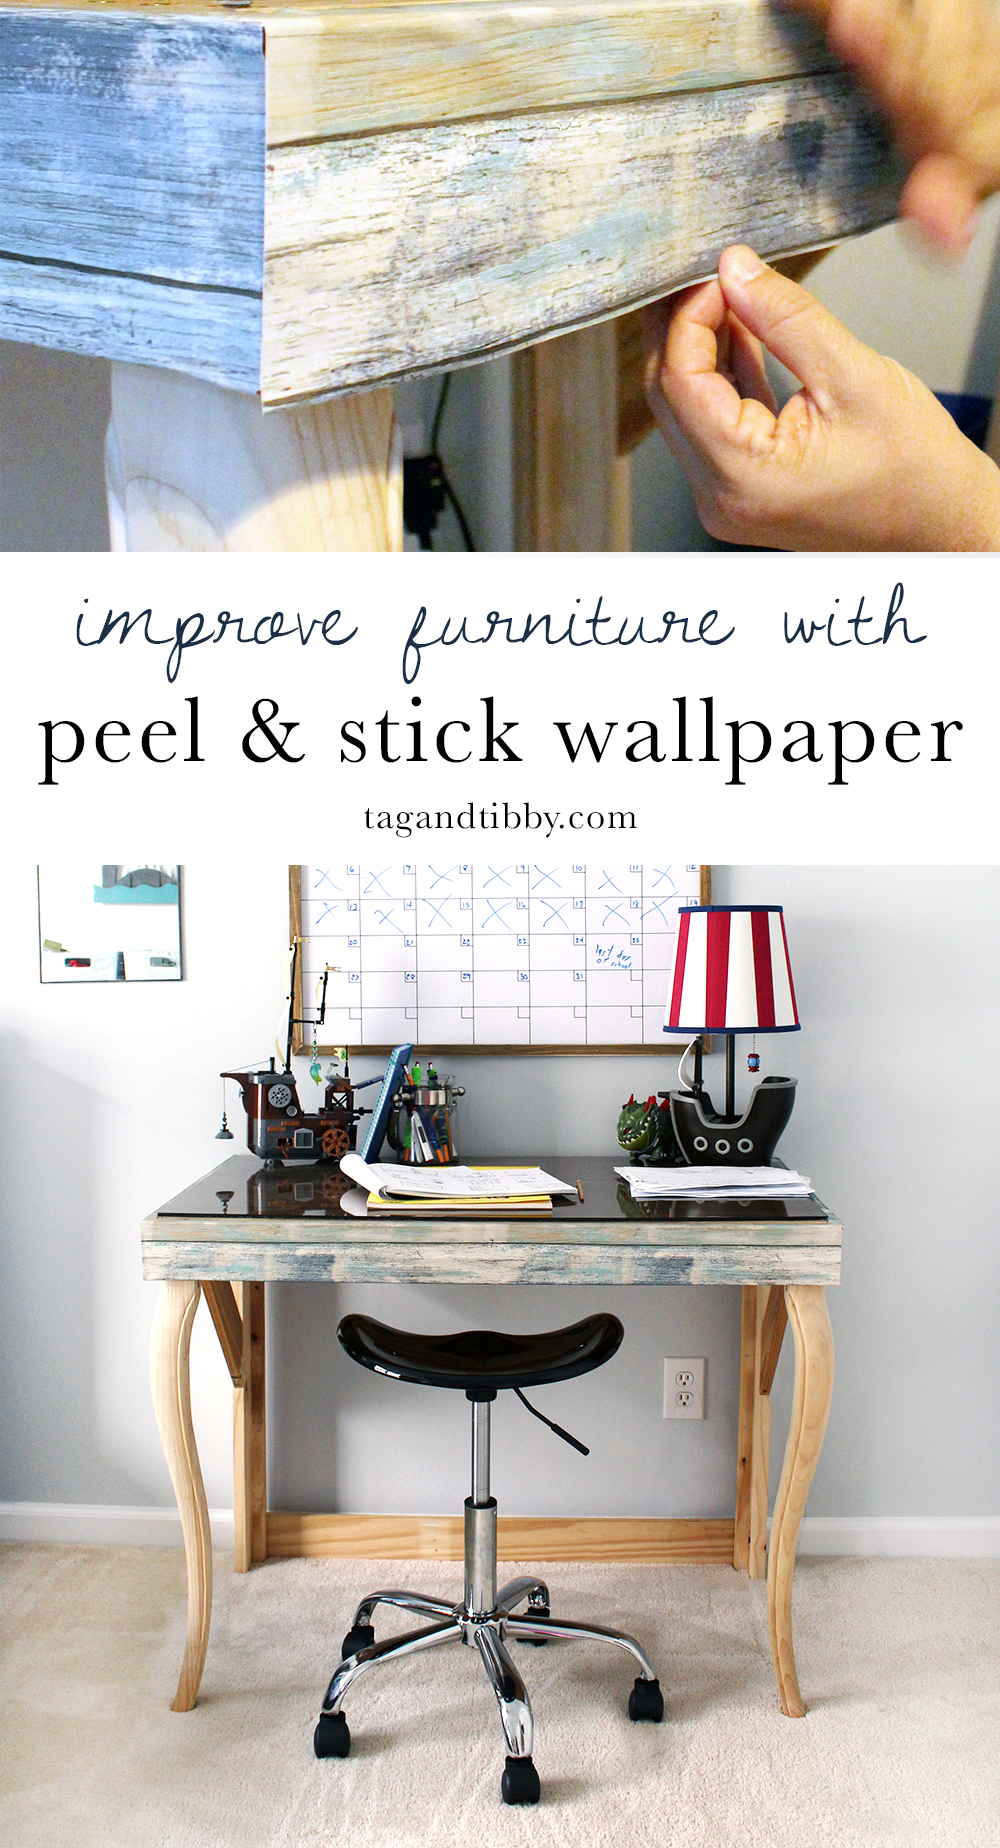 Cover furniture with peel & stick wallpaper for a custom look on a small budget!